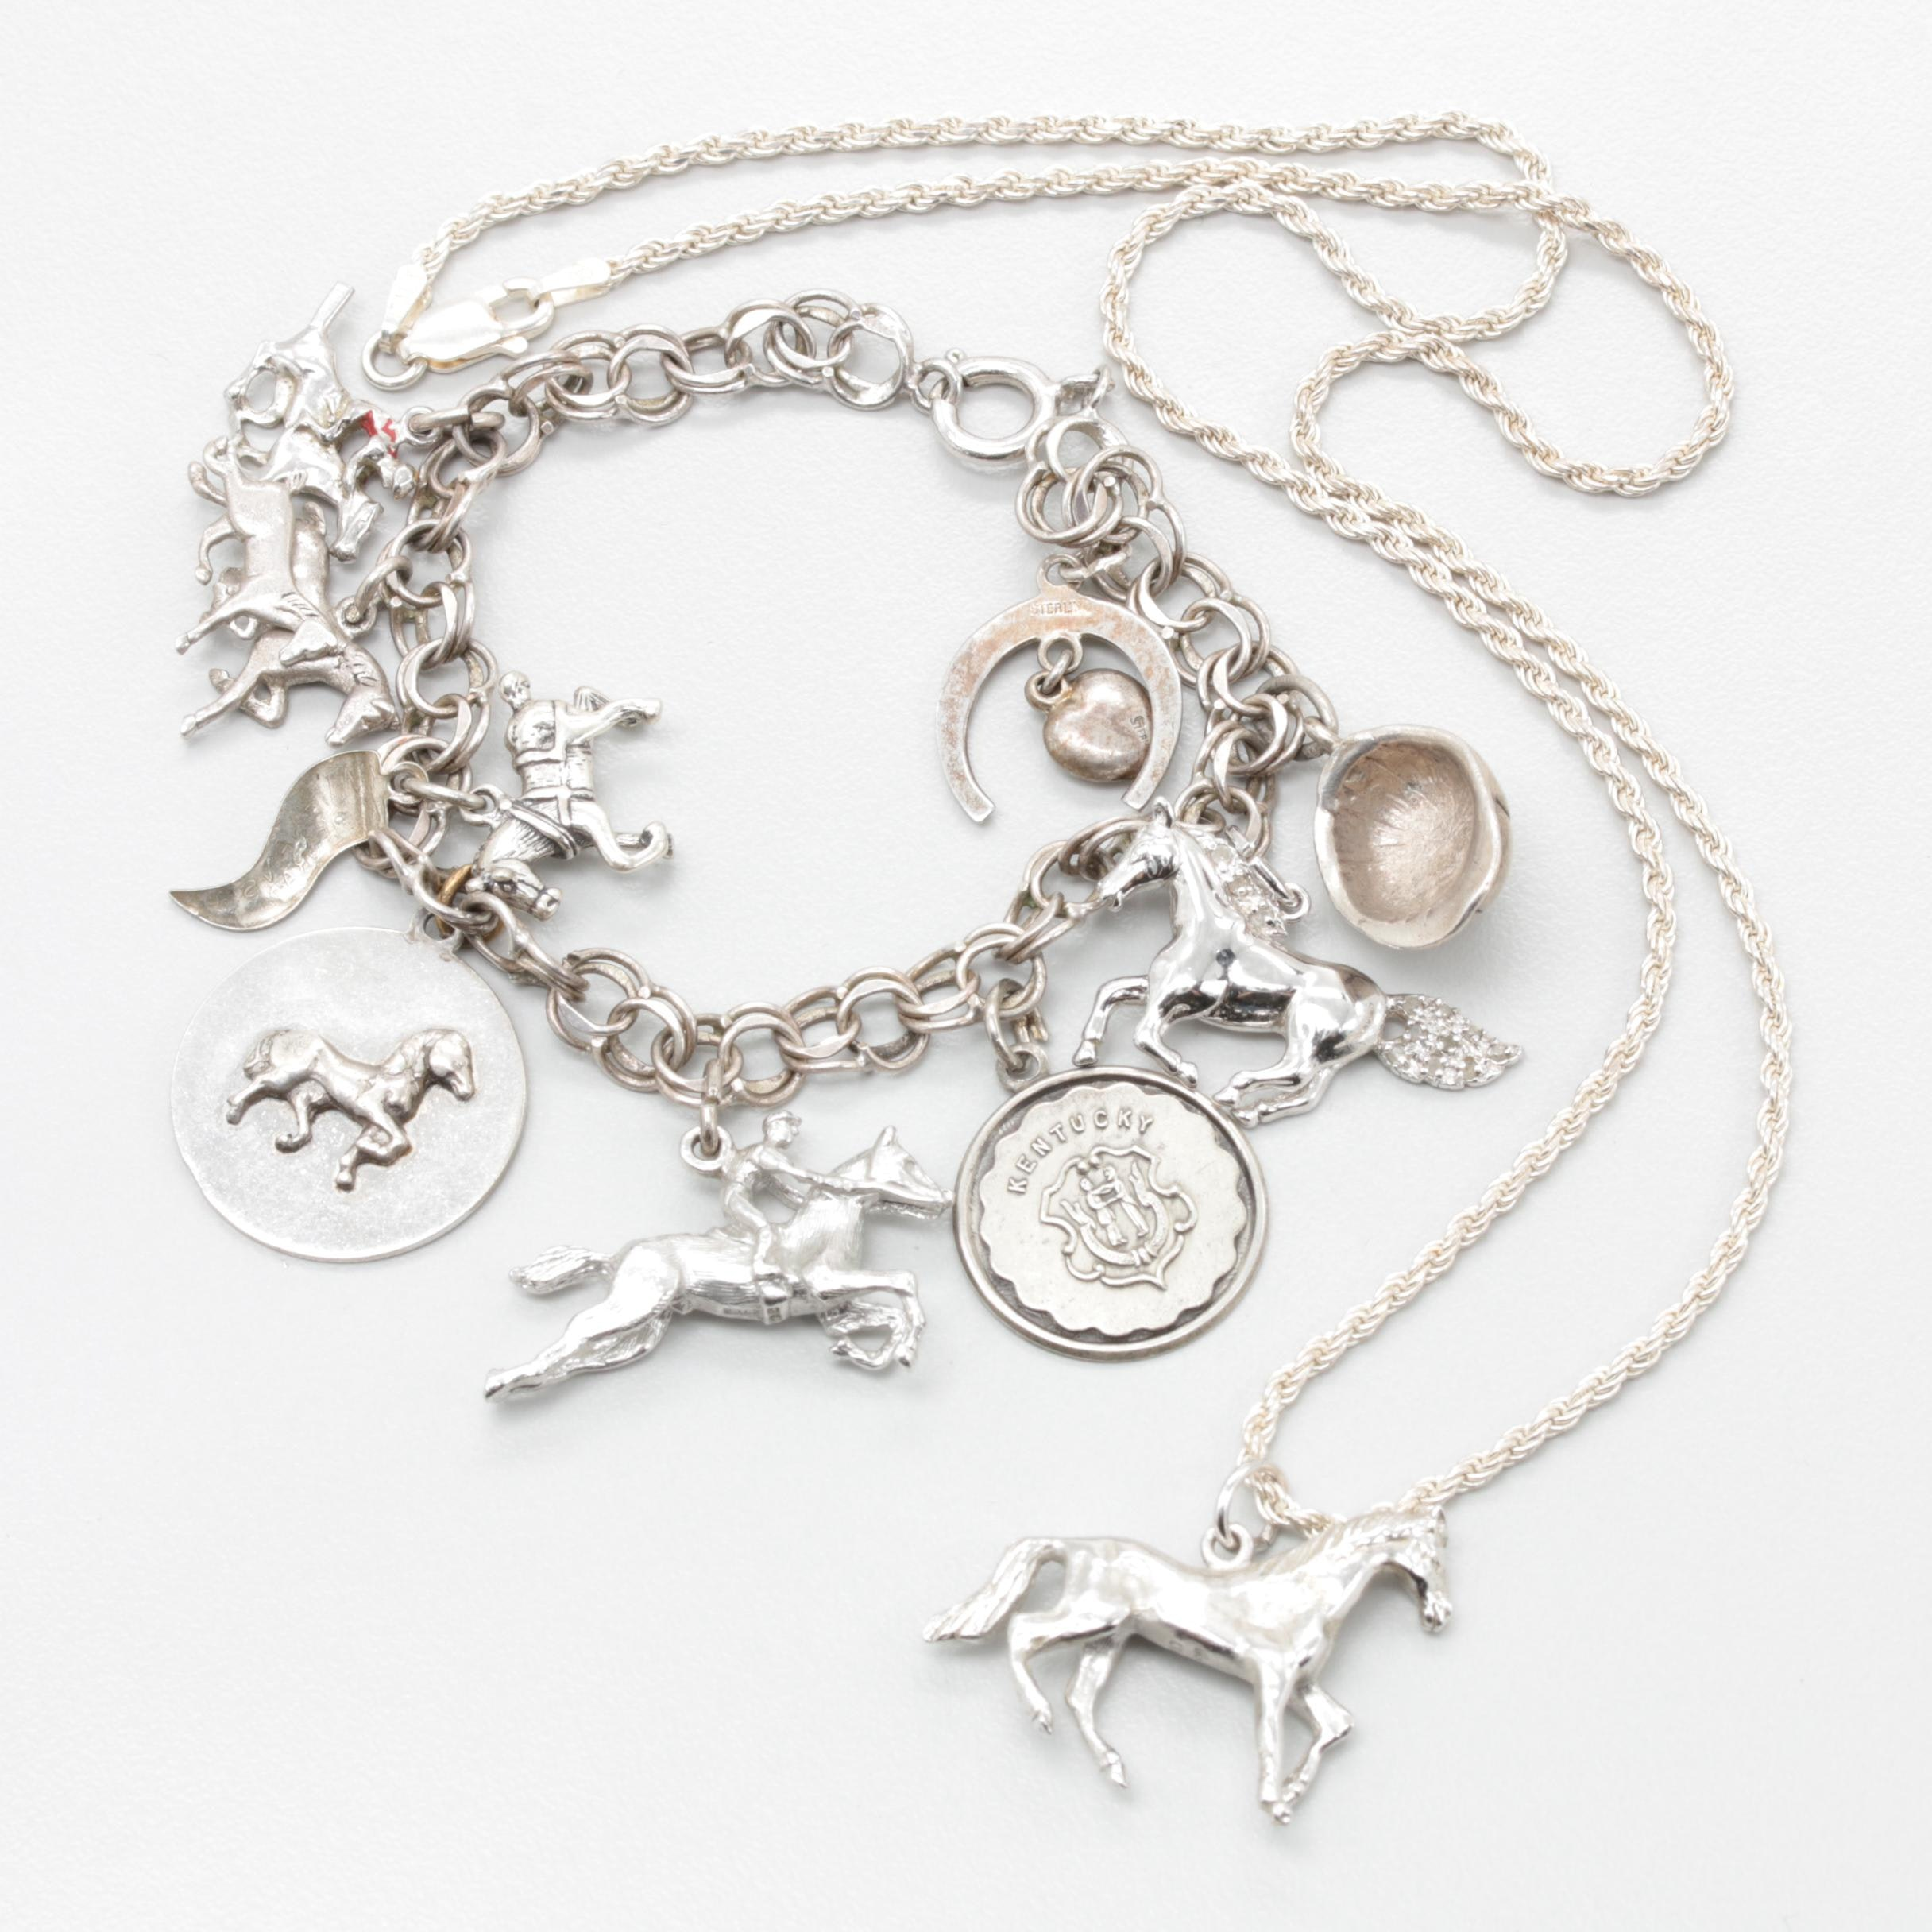 Sterling, 900, 850 Silver and Silver Tone Necklace and Charm Bracelet